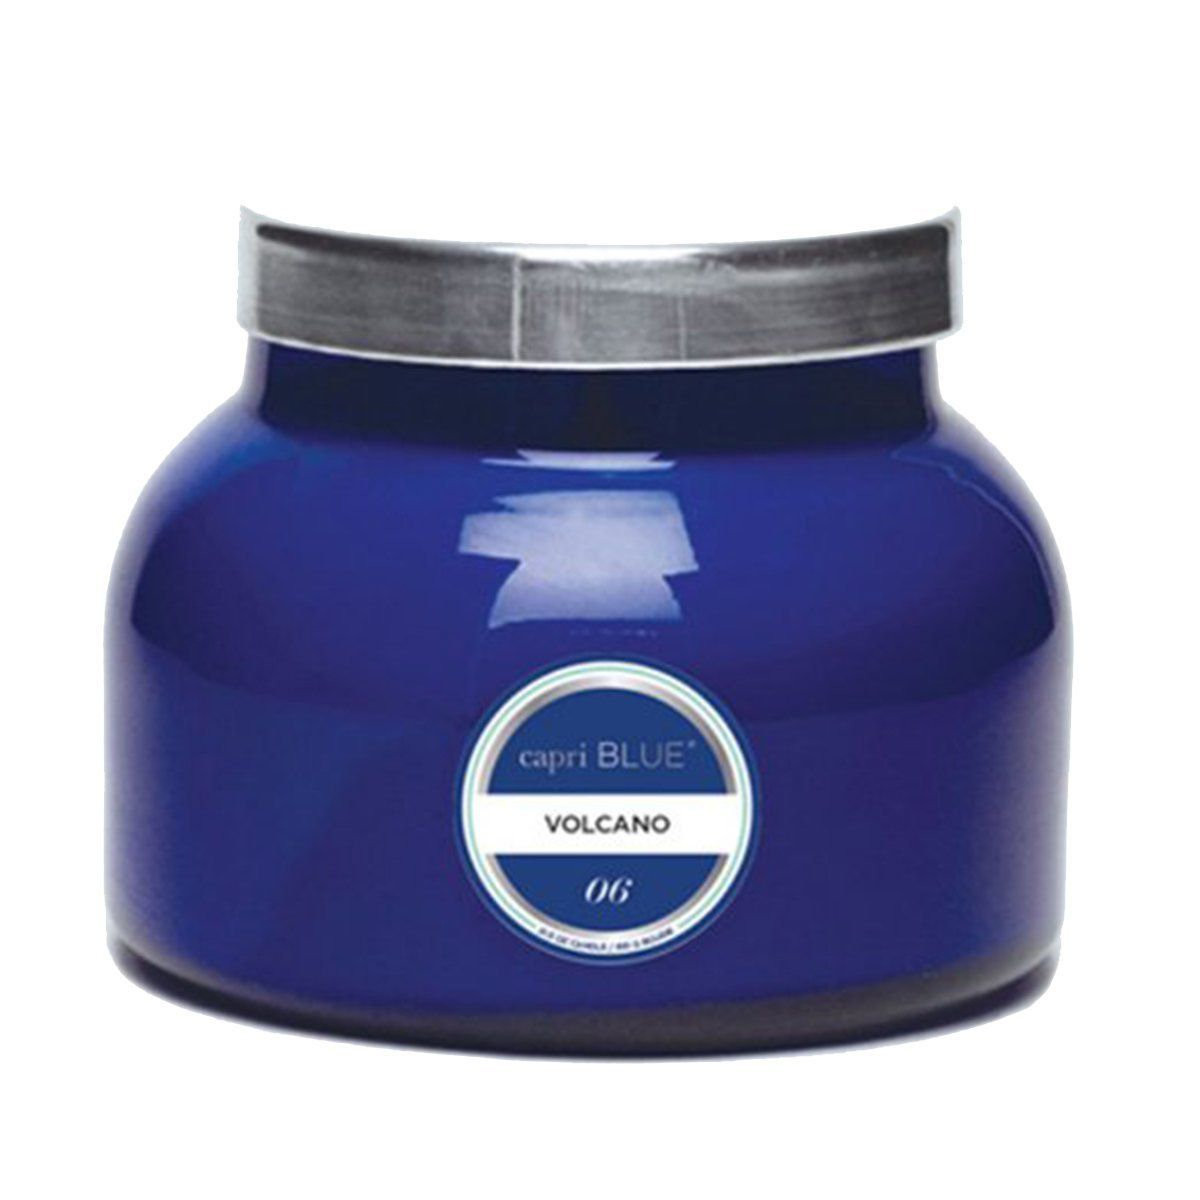 Aspen Bay Jar Volcano Candle, 21.5 Ounce, Capri Blue